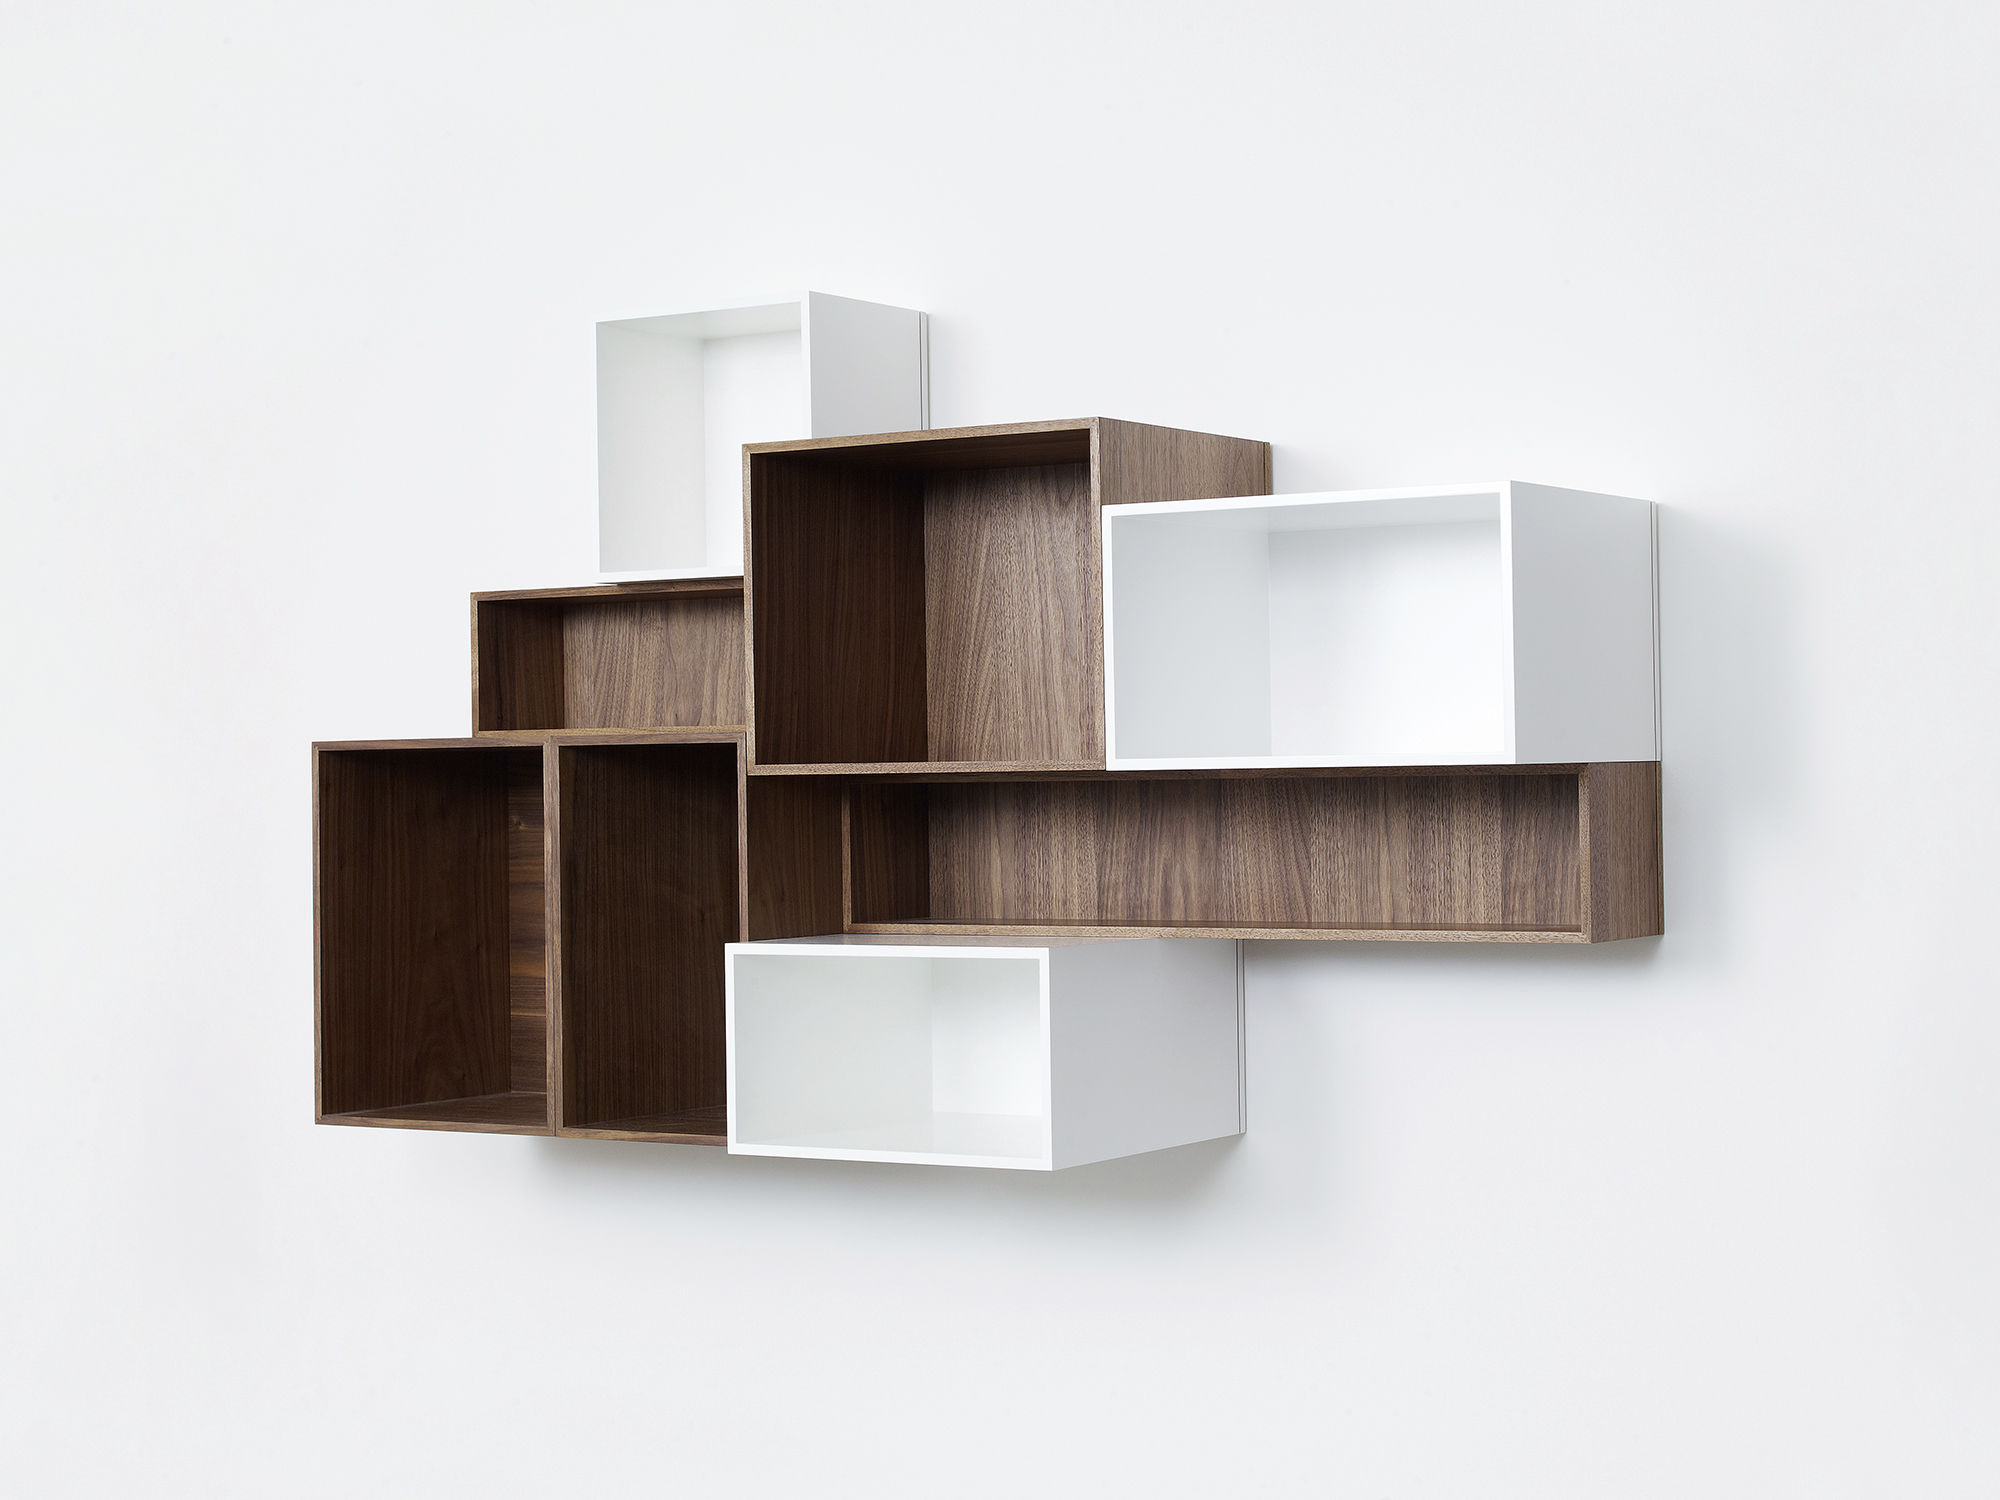 contemporary bookcase  mdf  cd and dvd rack  mymito gmbh - contemporary bookcase  mdf  cd and dvd rack